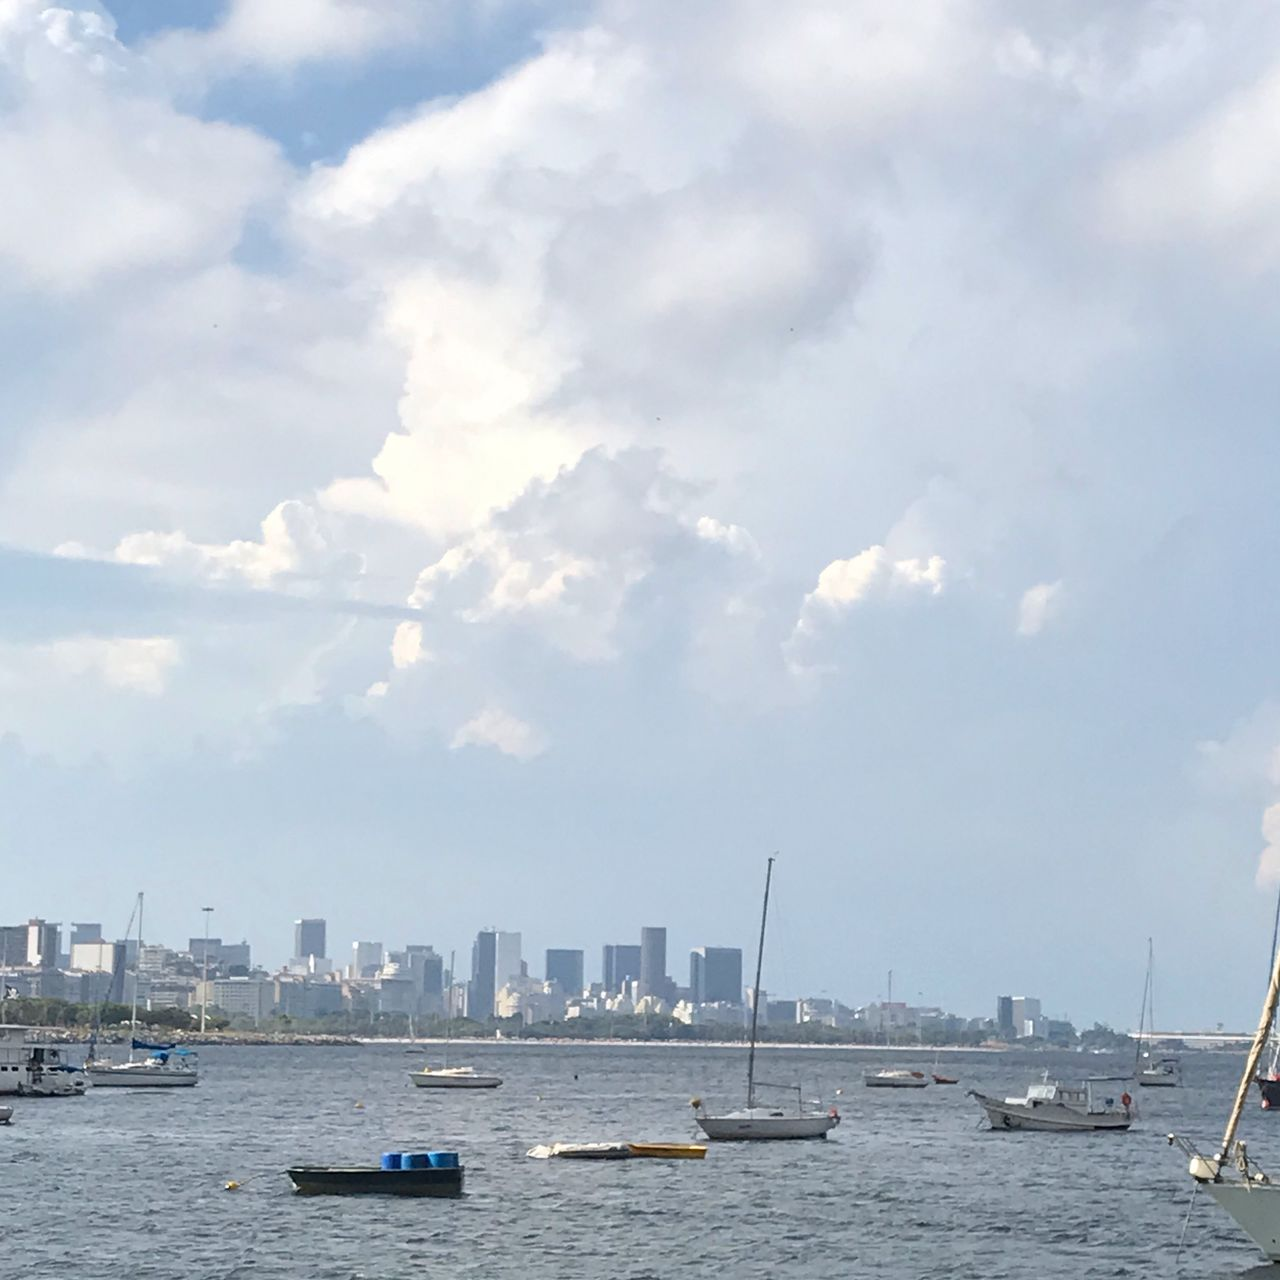 water, sky, cloud - sky, nautical vessel, architecture, building exterior, built structure, city, waterfront, transportation, sea, day, building, mode of transportation, nature, cityscape, no people, urban skyline, outdoors, skyscraper, office building exterior, sailboat, yacht